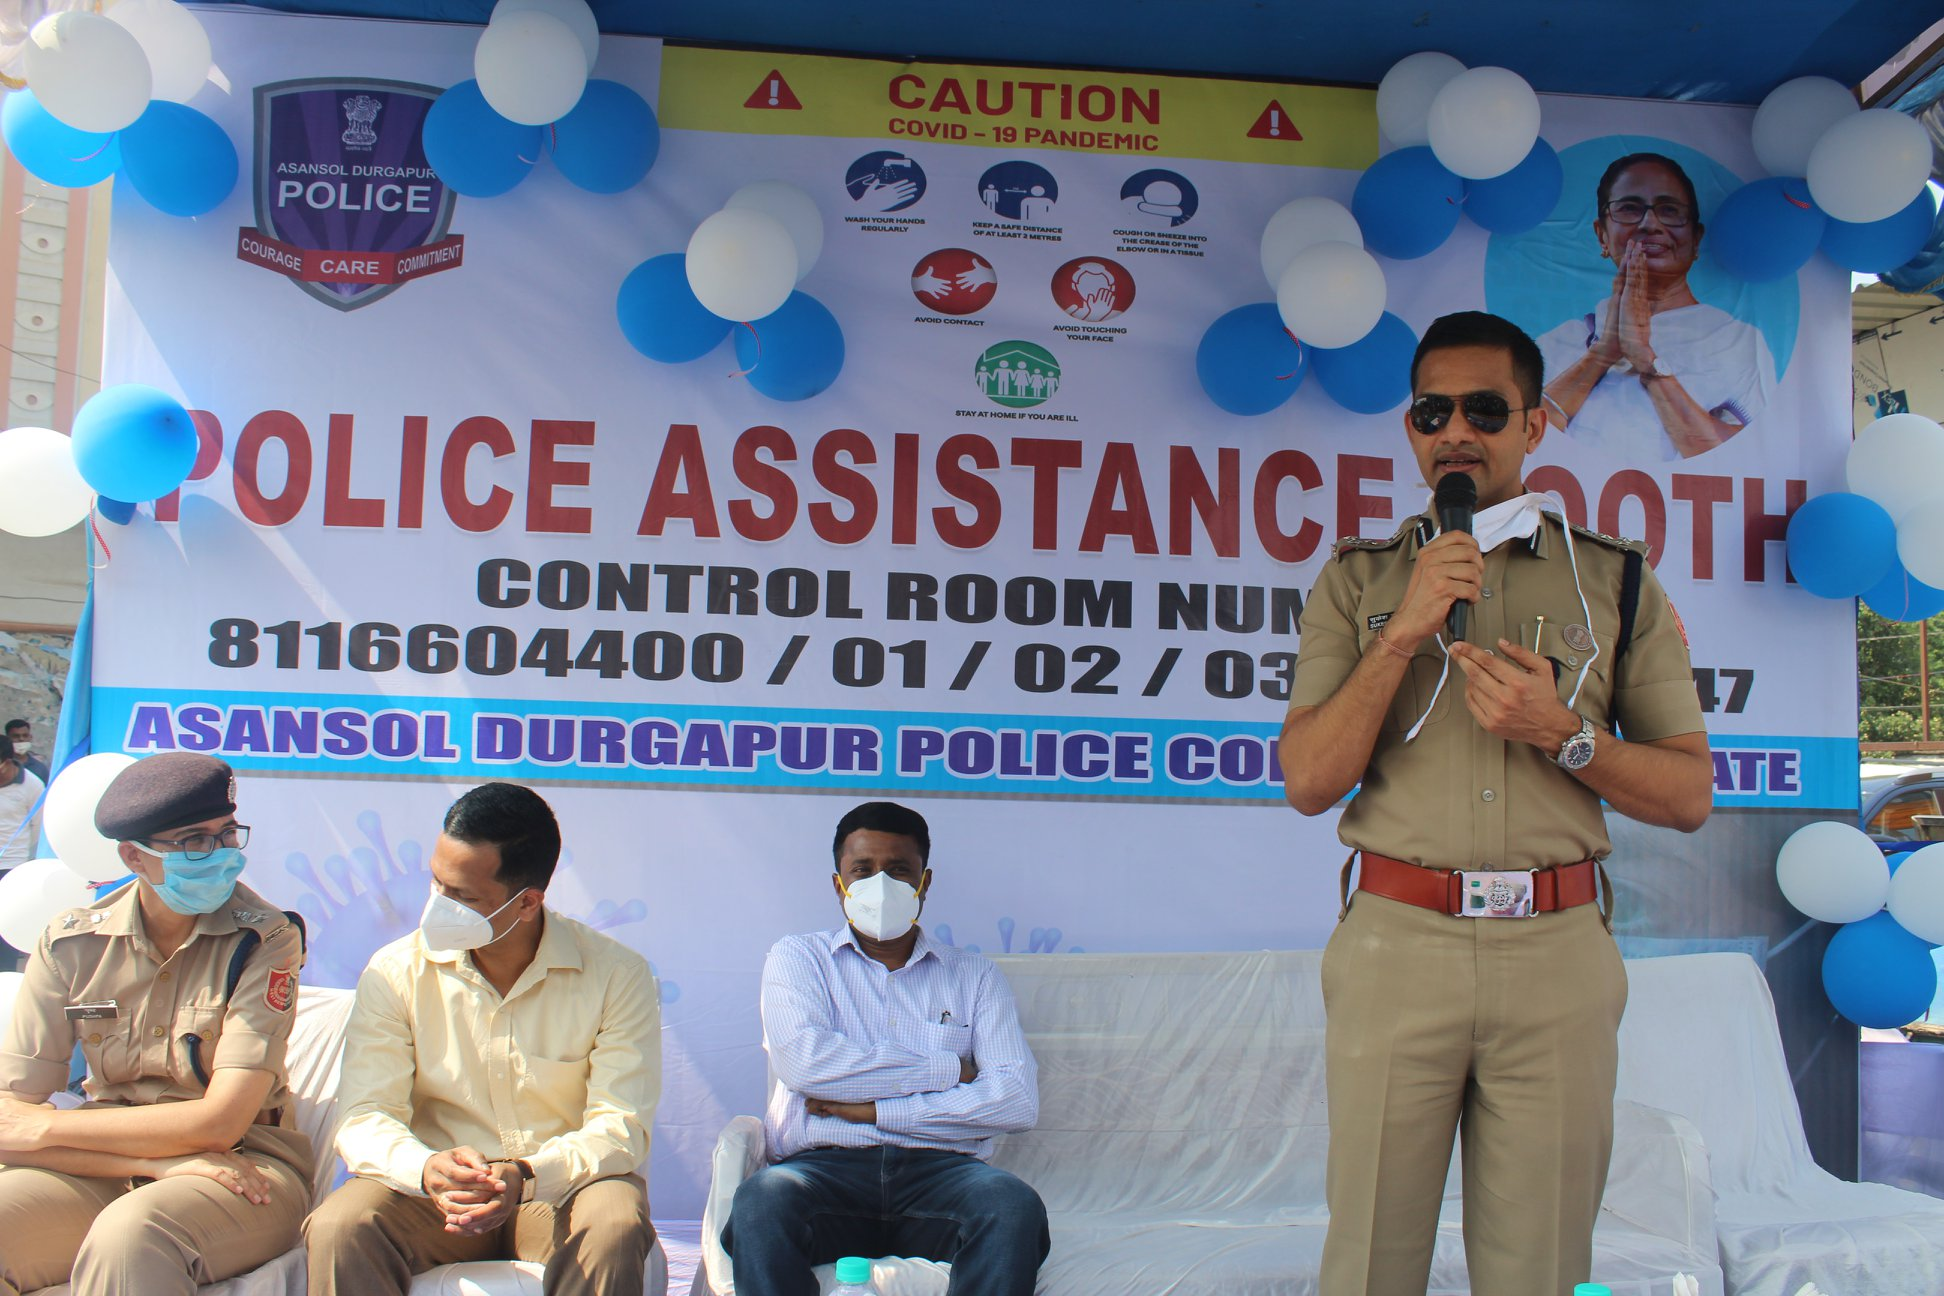 Police Assistance Booth opening for Durgapuja Festival 2020